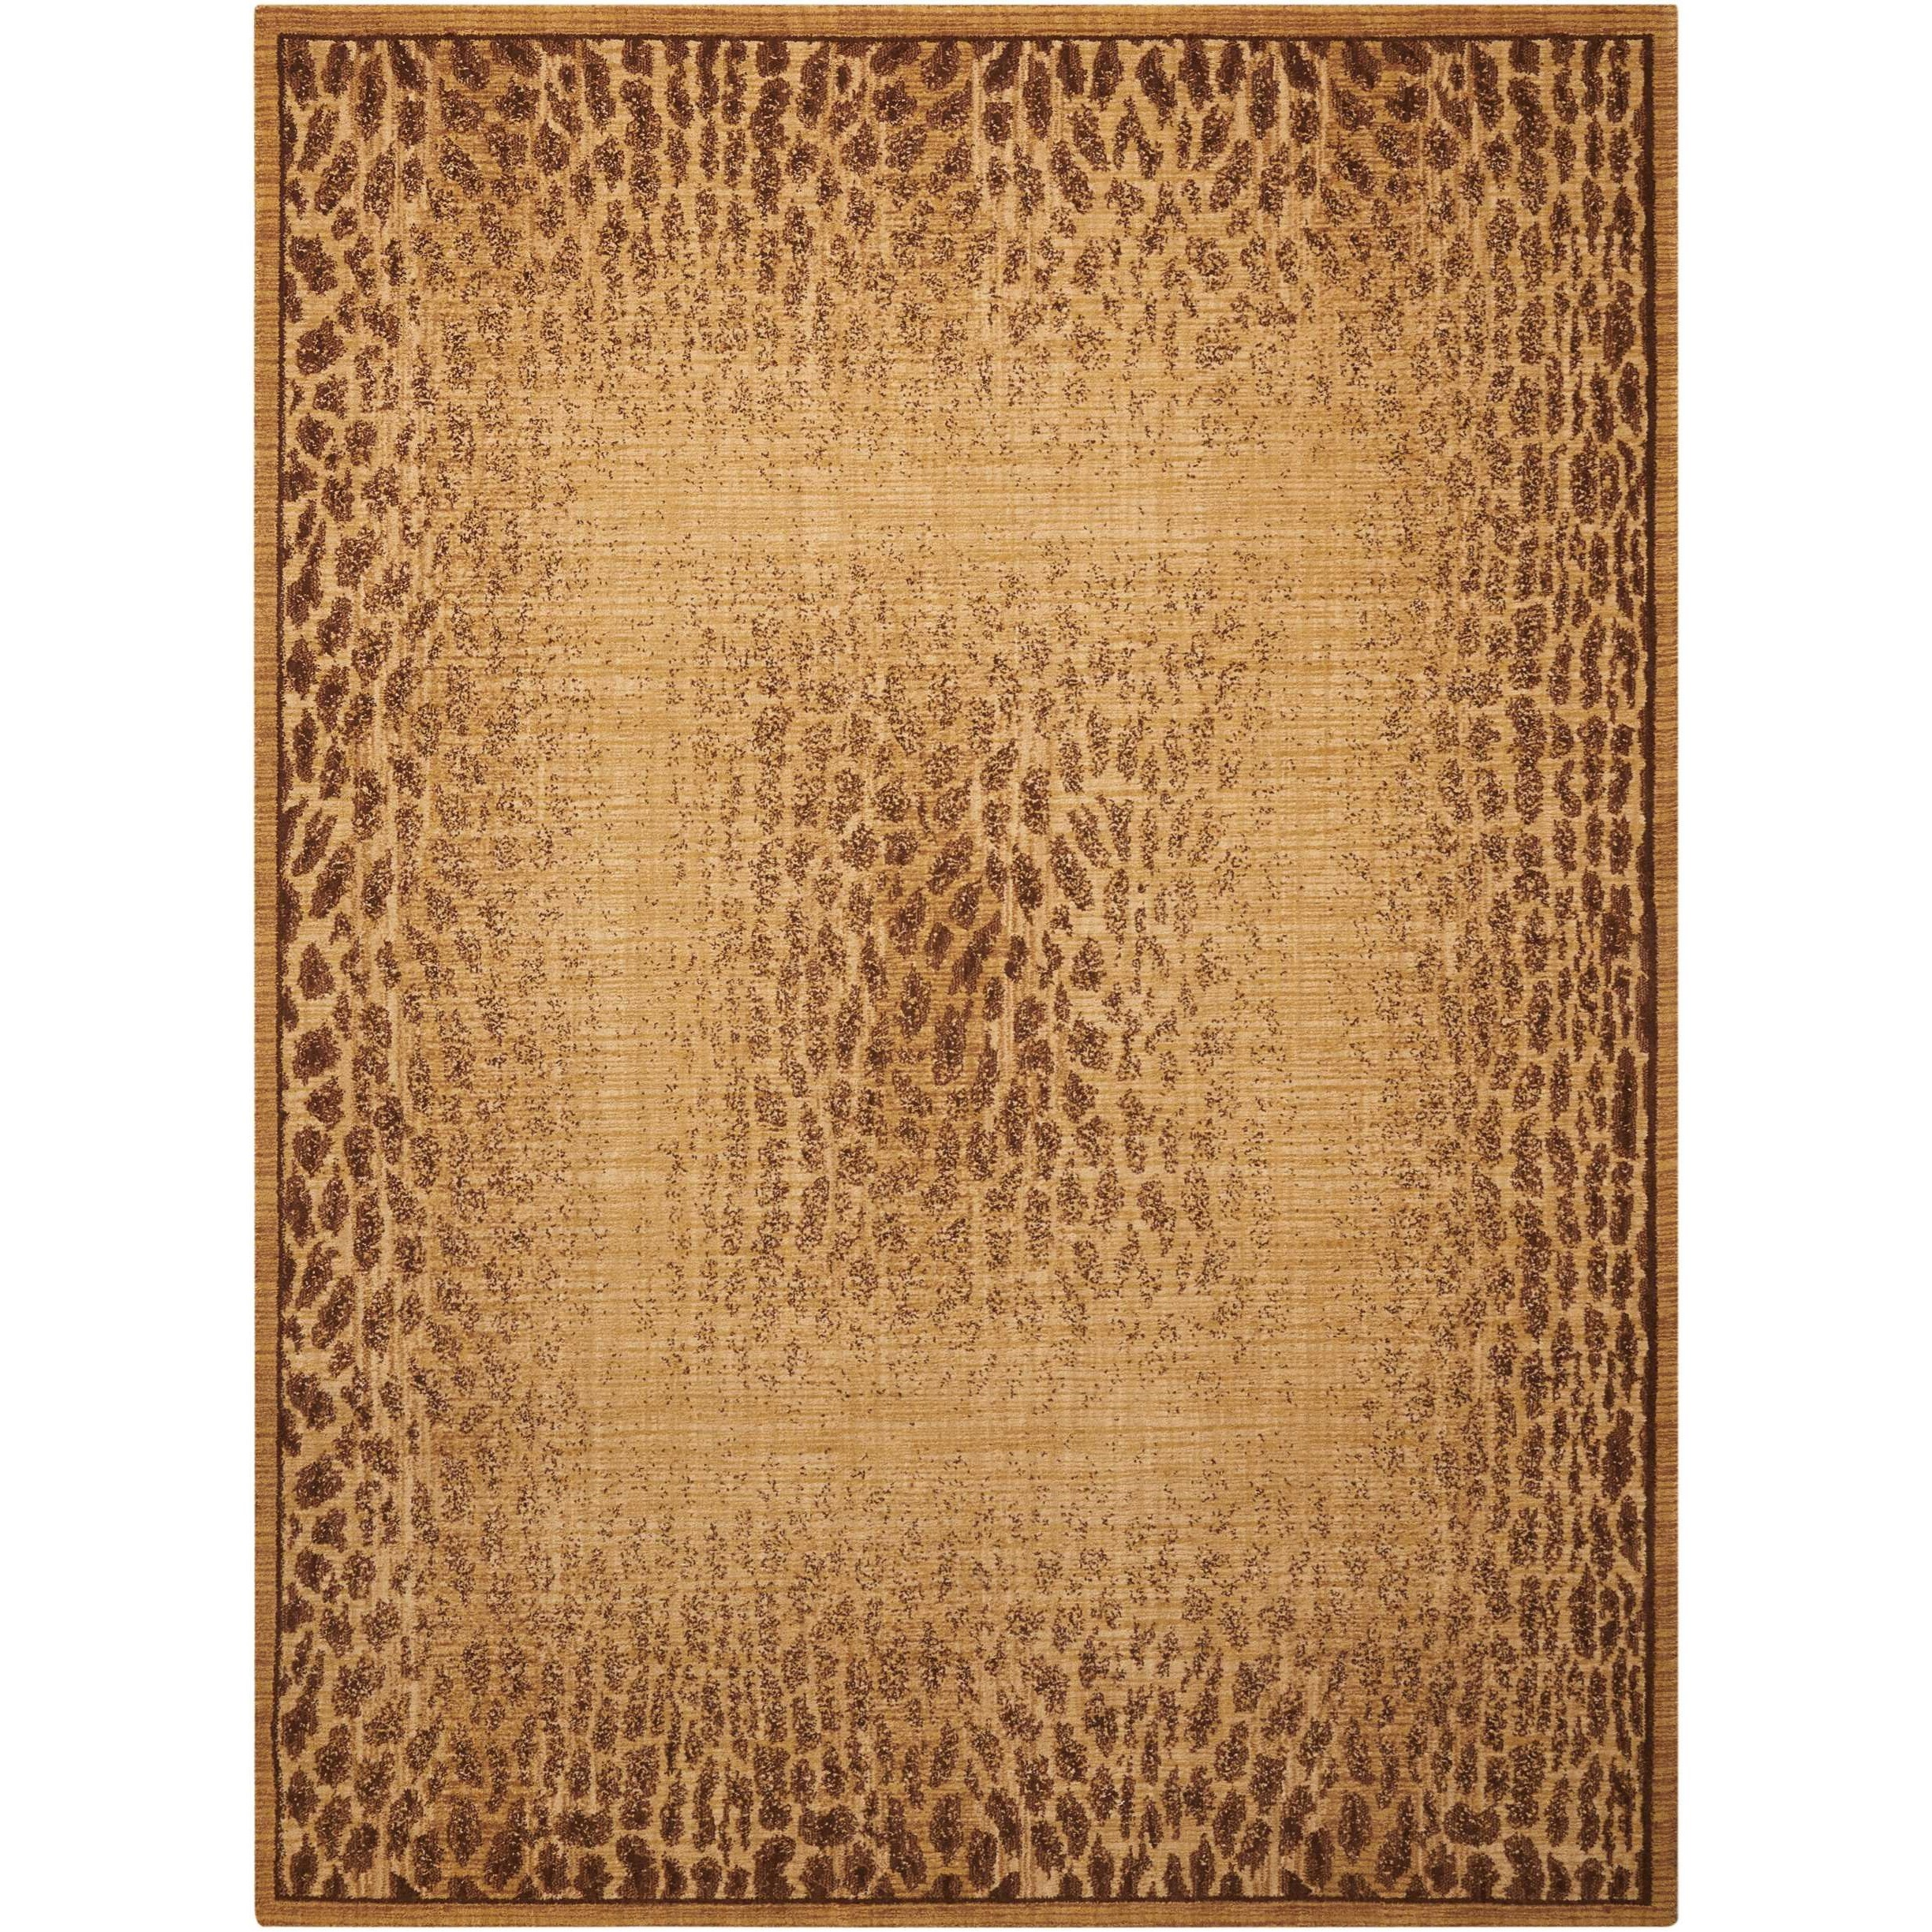 """Radiant Impression 9'6"""" x 13'6"""" Beige Rectangle Rug by Nourison at Home Collections Furniture"""